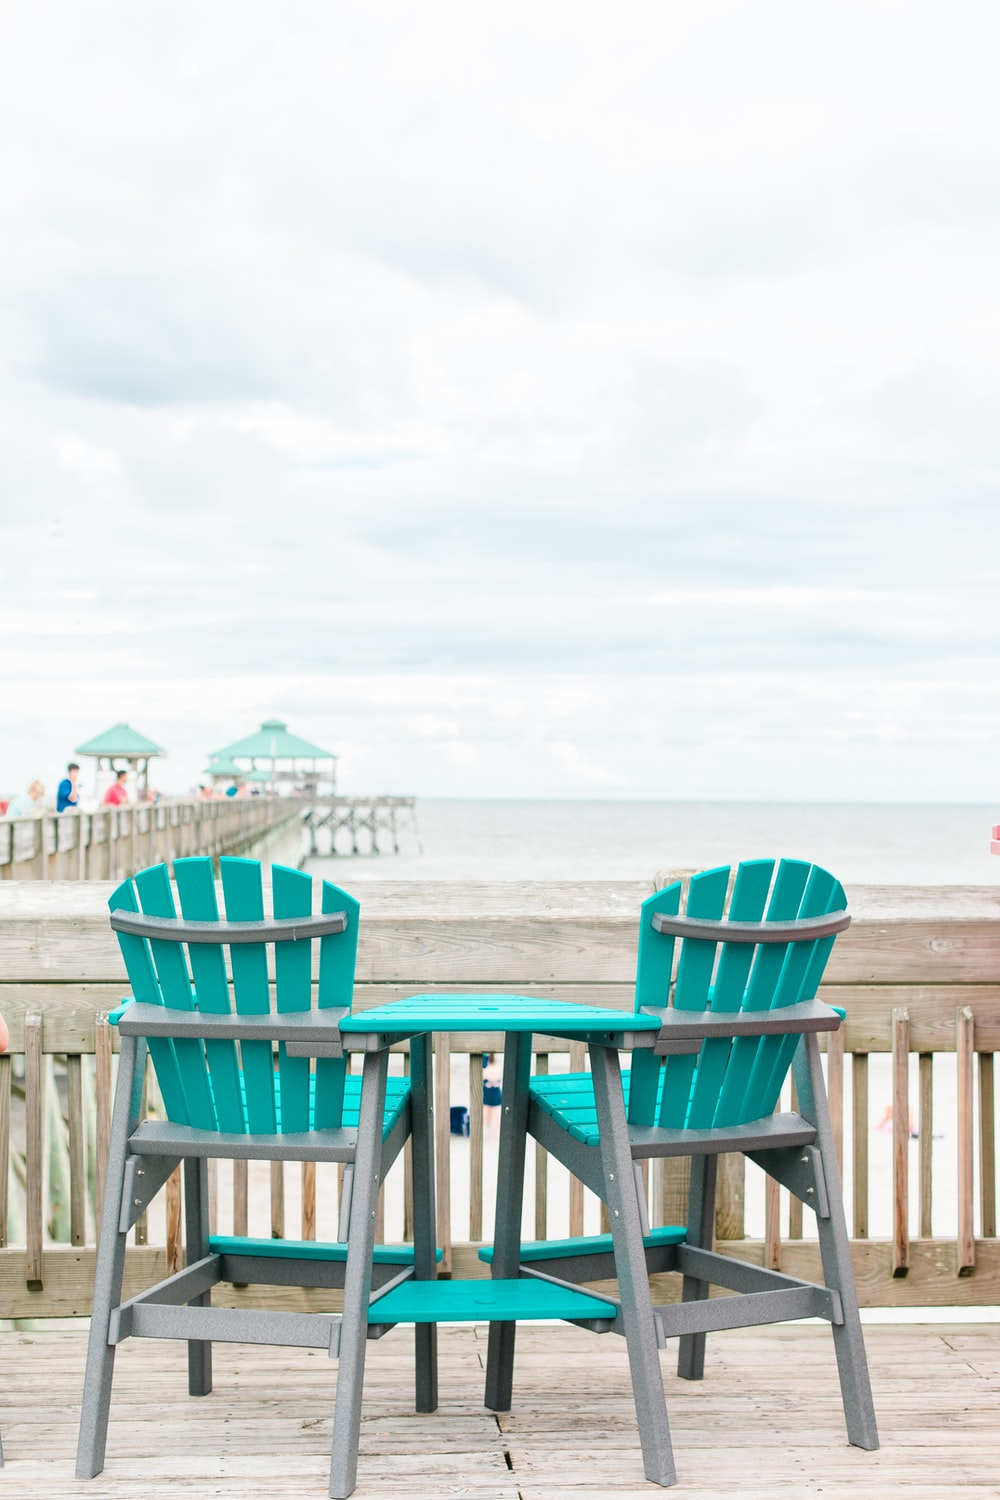 blue and gray wooden chair near shore